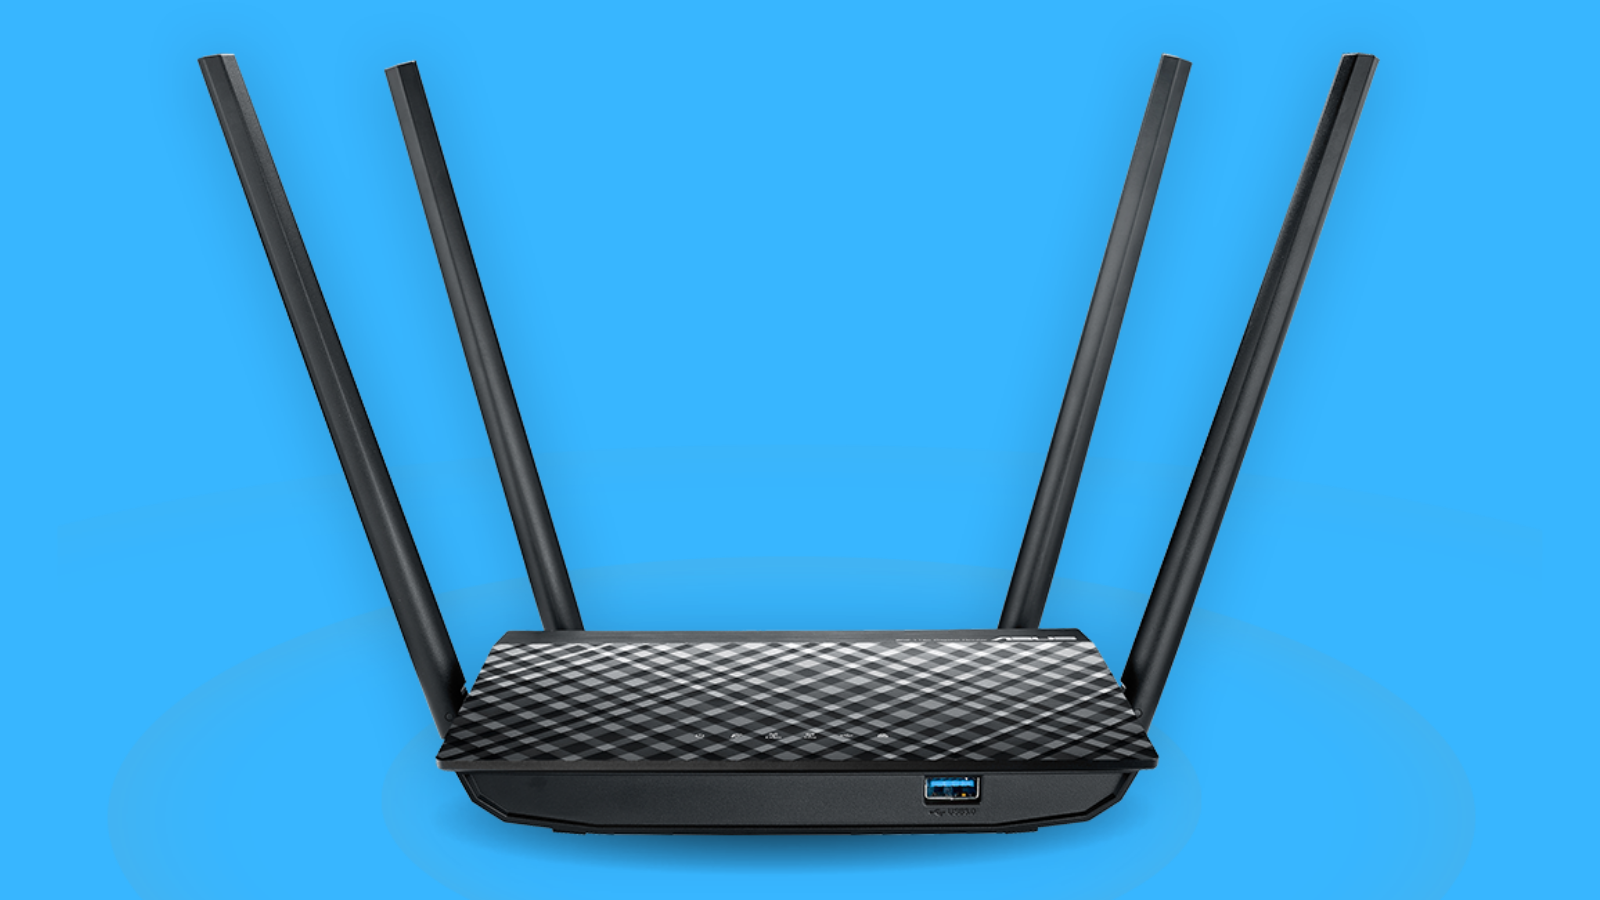 8 Best Budget Routers to Buy in 2019 | TechNadu